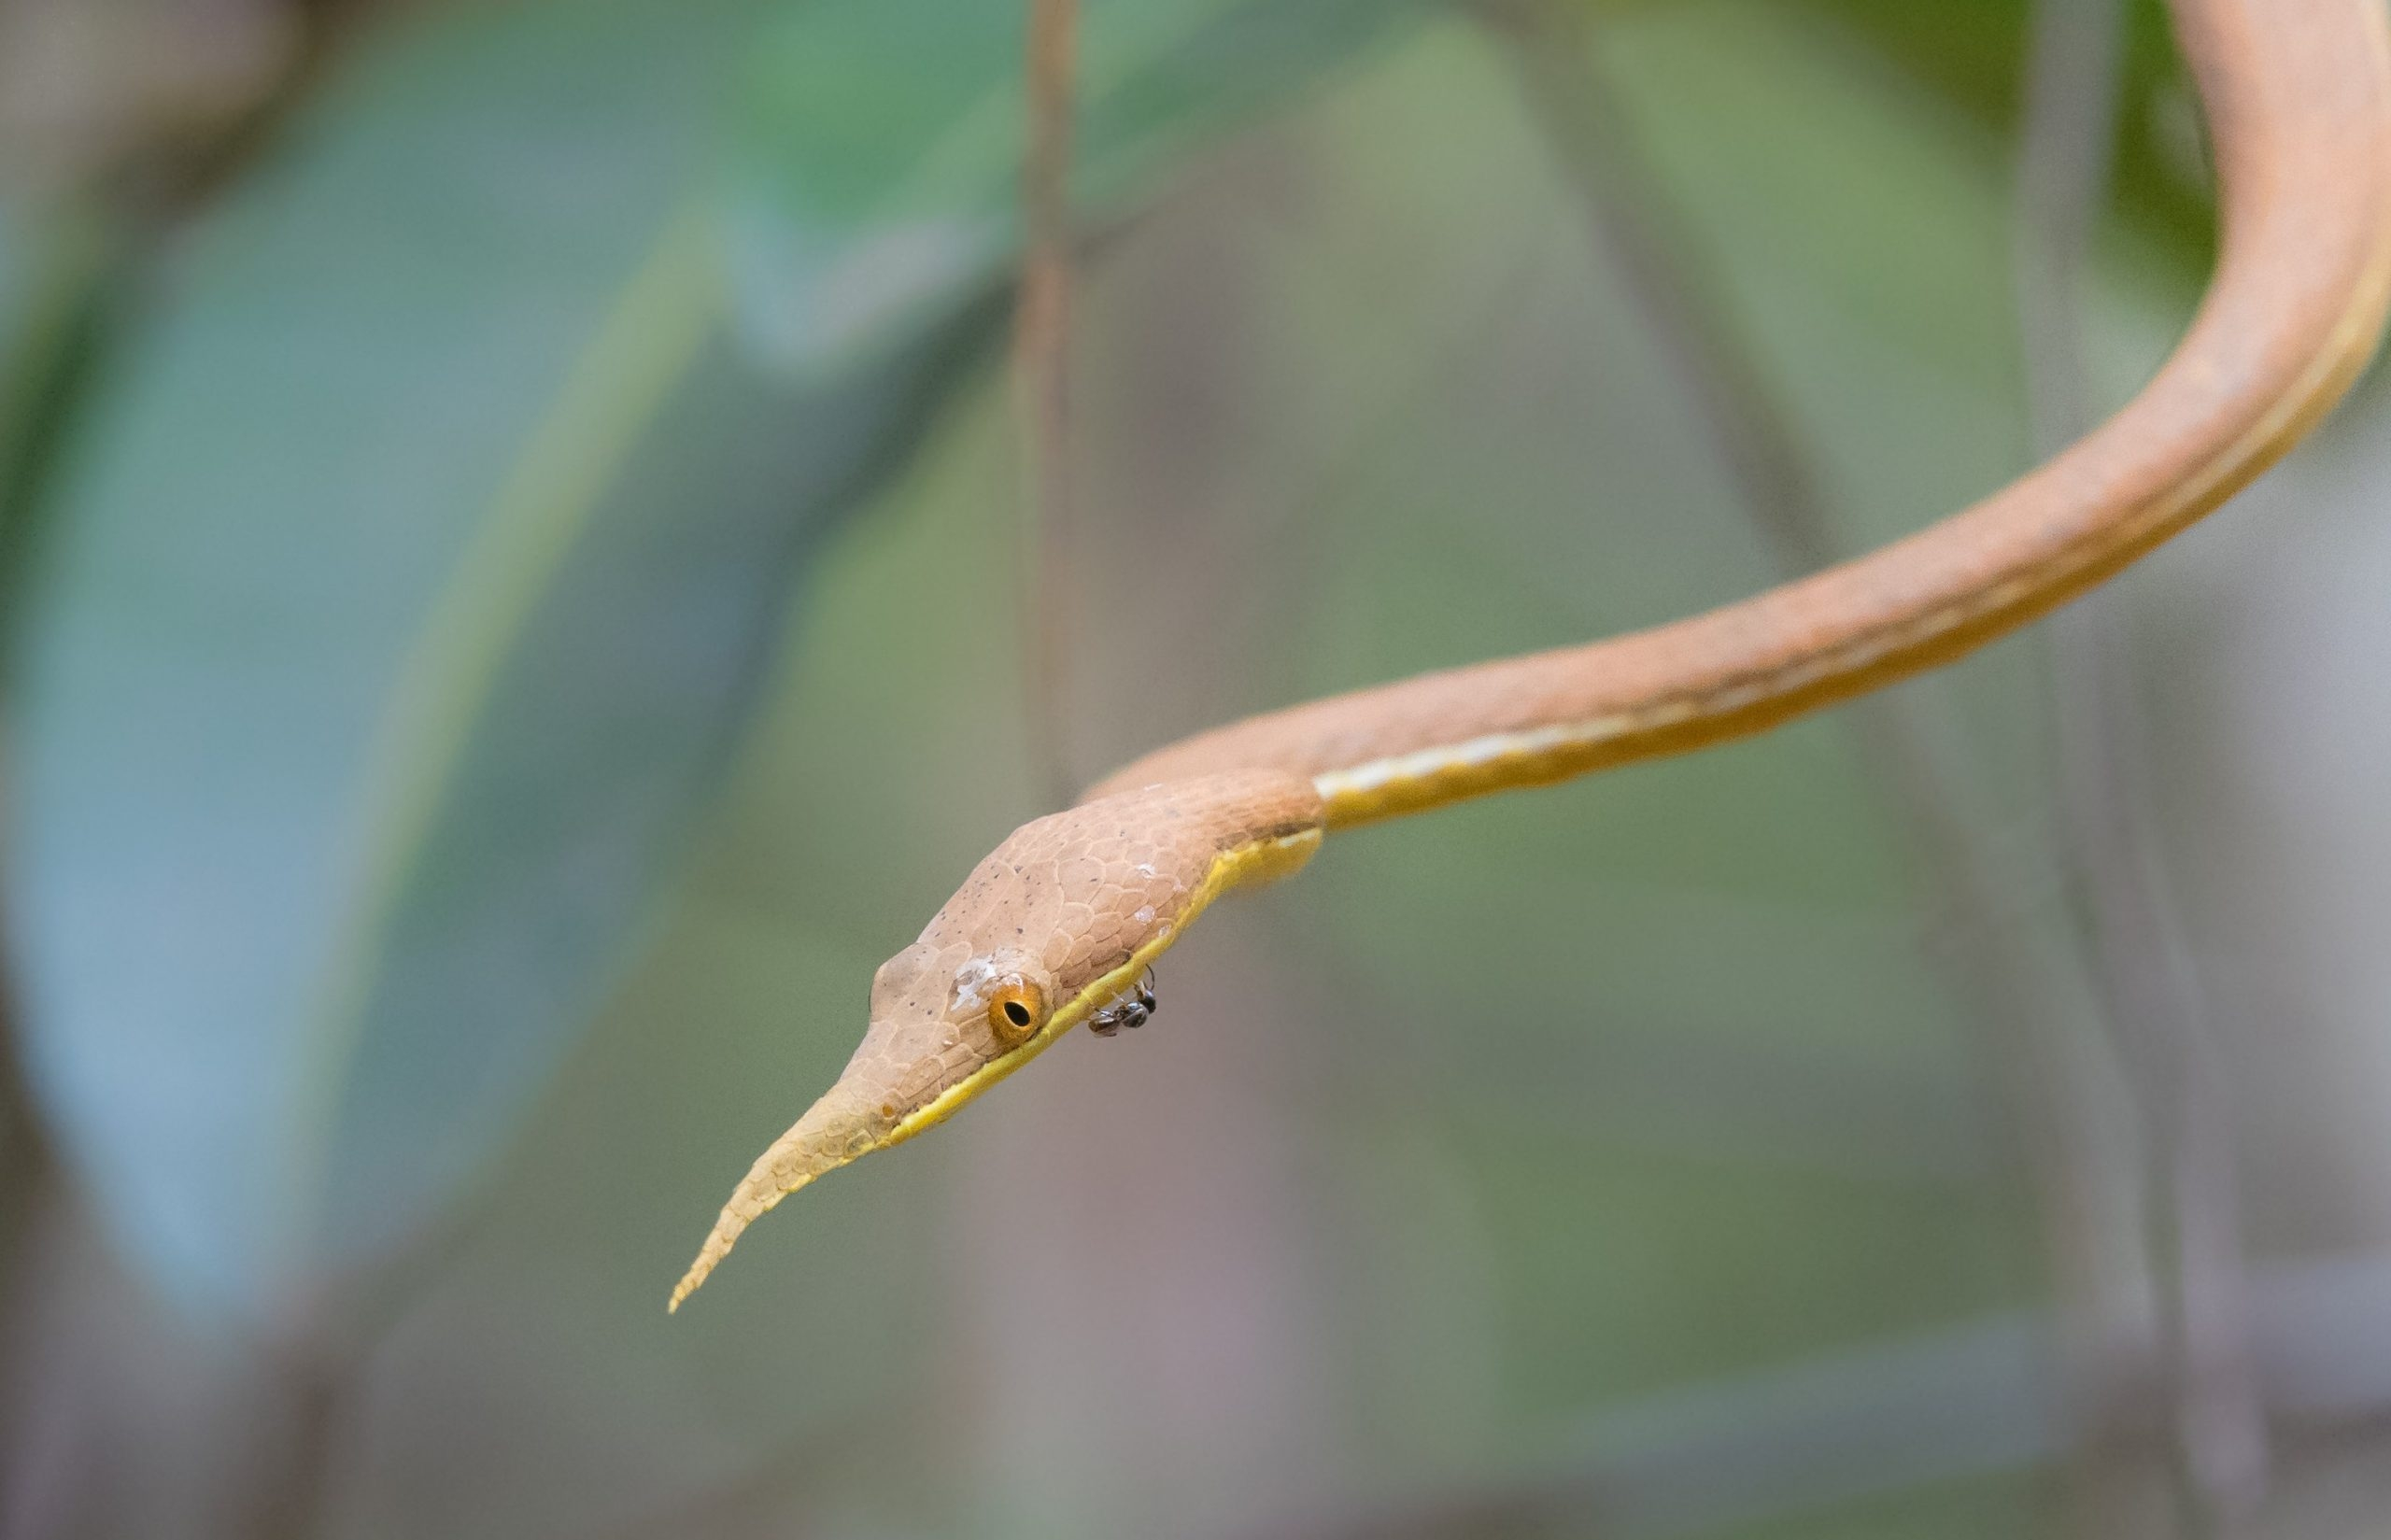 Our Madagascar birding, wildlife and photography tours offer the best experience for the all-round naturalist. We focus on all the natural wonders that this magnificent island has to offer from plants and fungi to reptiles and amphibians to mammals and birds. The Leaf-nosed Snake is one of the thousands of reptiles that occur on this magical island